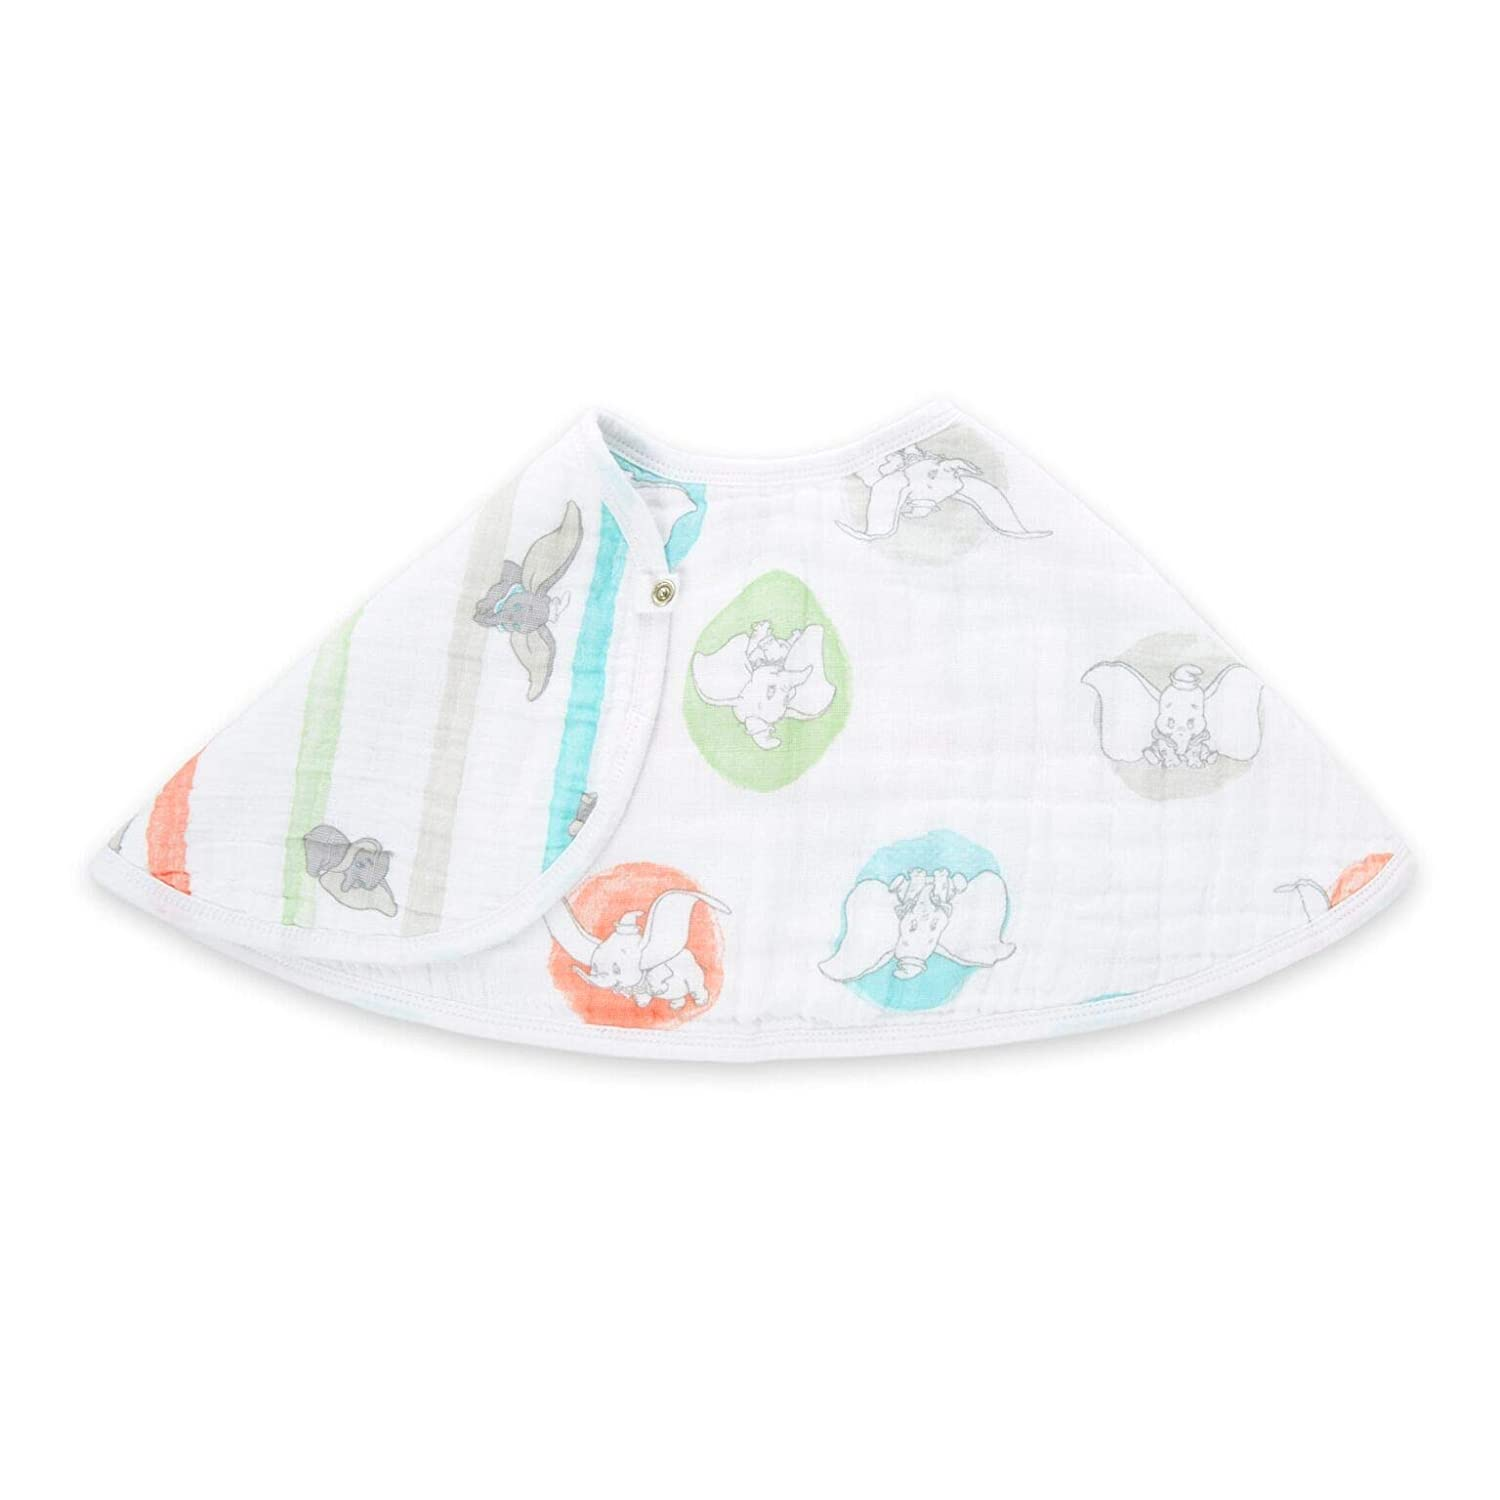 "aden by aden + Anais Disney Burpy Bib, 100% Cotton Muslin, Soft Absorbent 4 Layers, Multi-Use Burp Cloth and Bib, 22.5"" X 11"", Single, Flying Dumbo-dot"